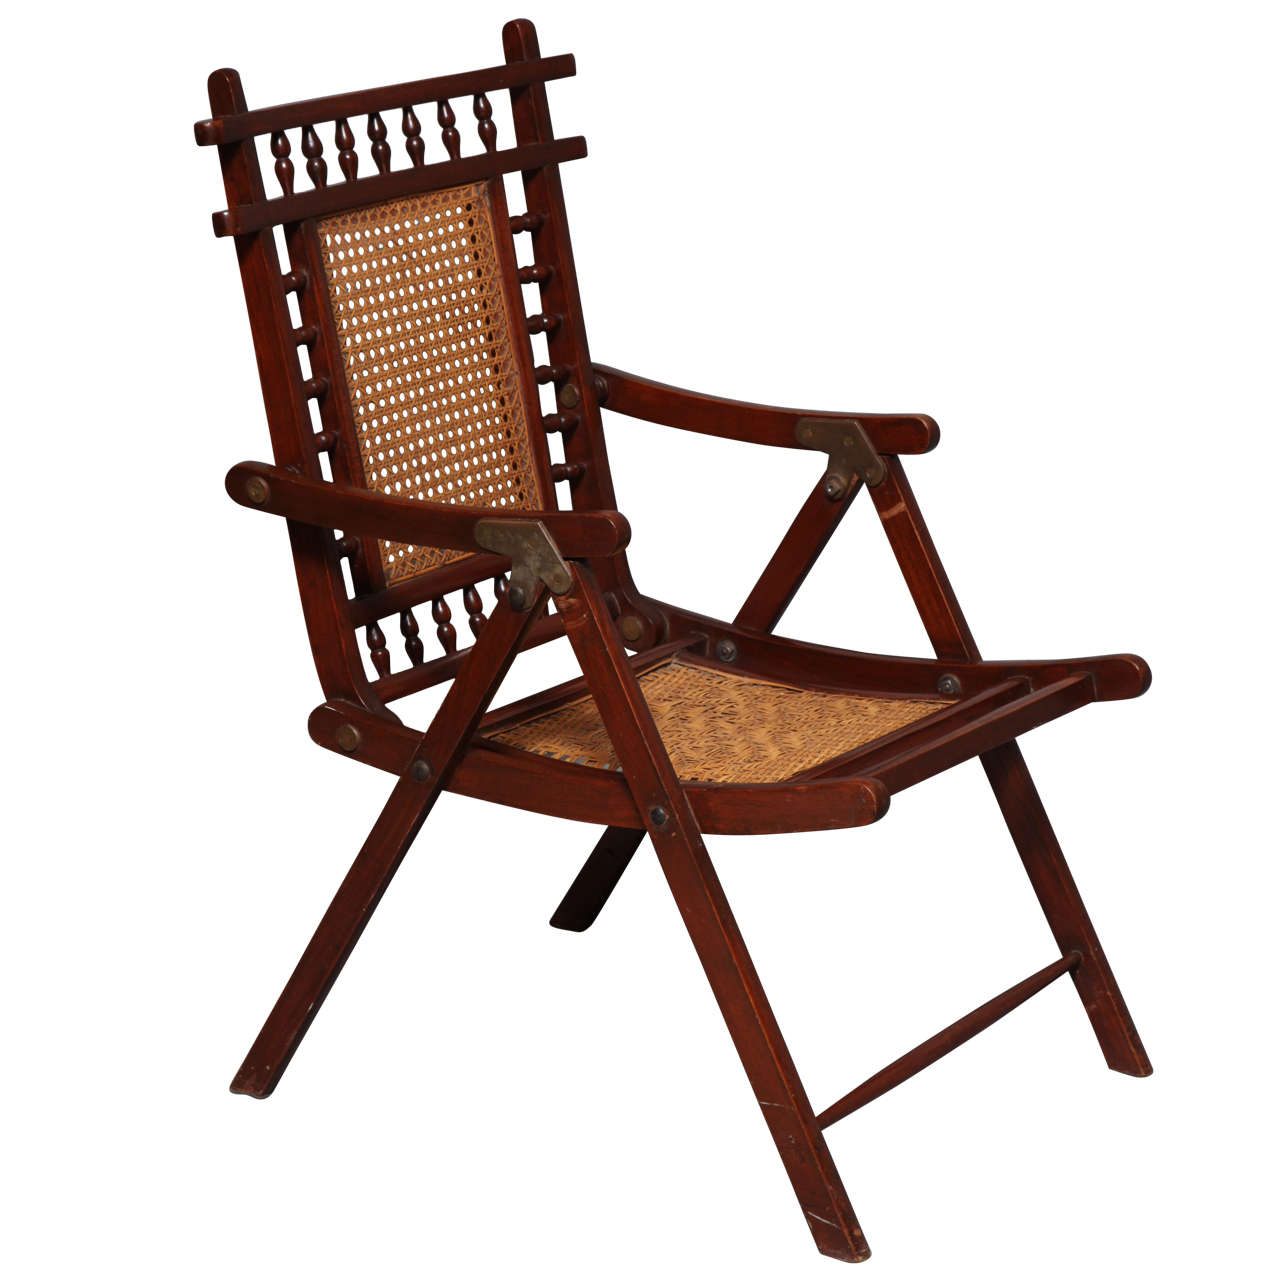 19th Century English Teak And Rattan Yacht Deck Chair At